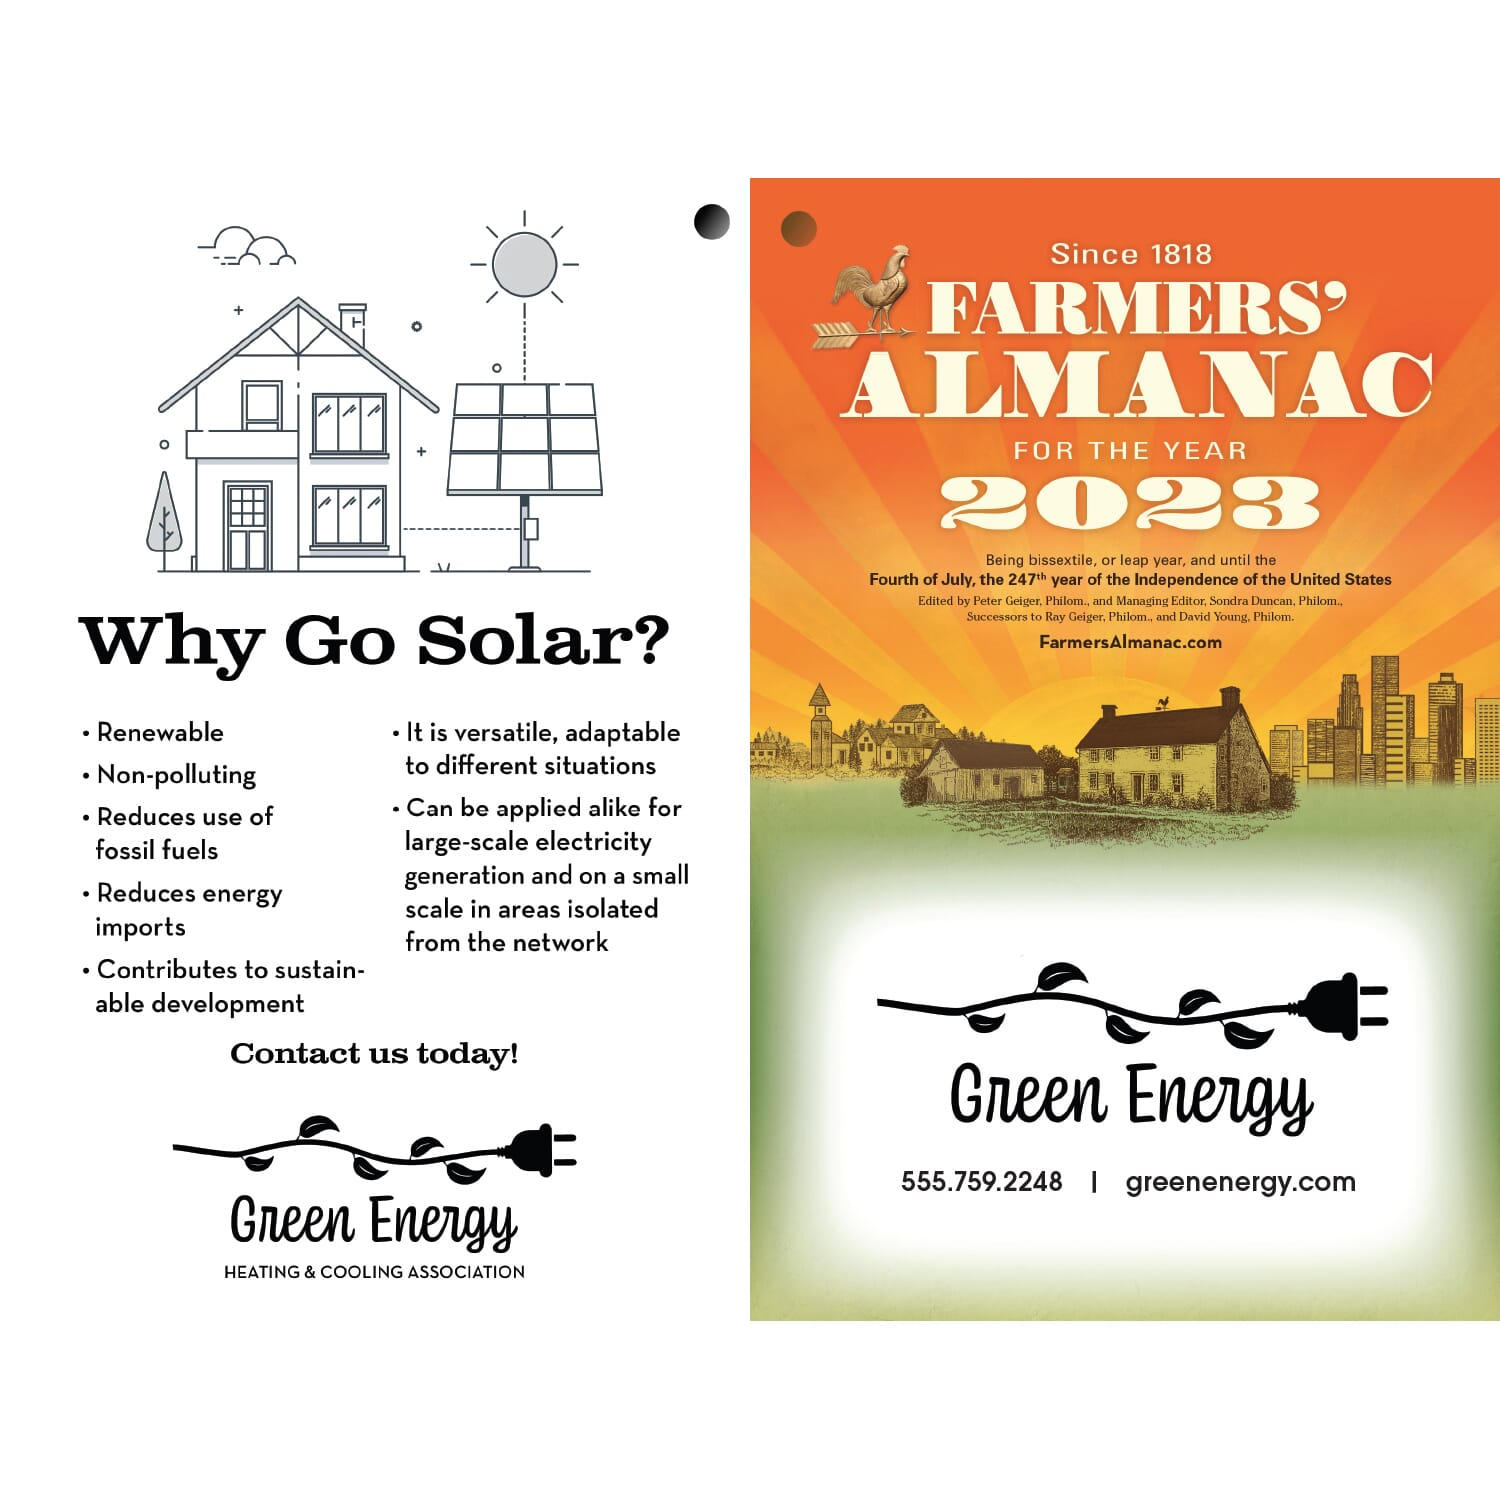 farmers almanac black and white cover imprint